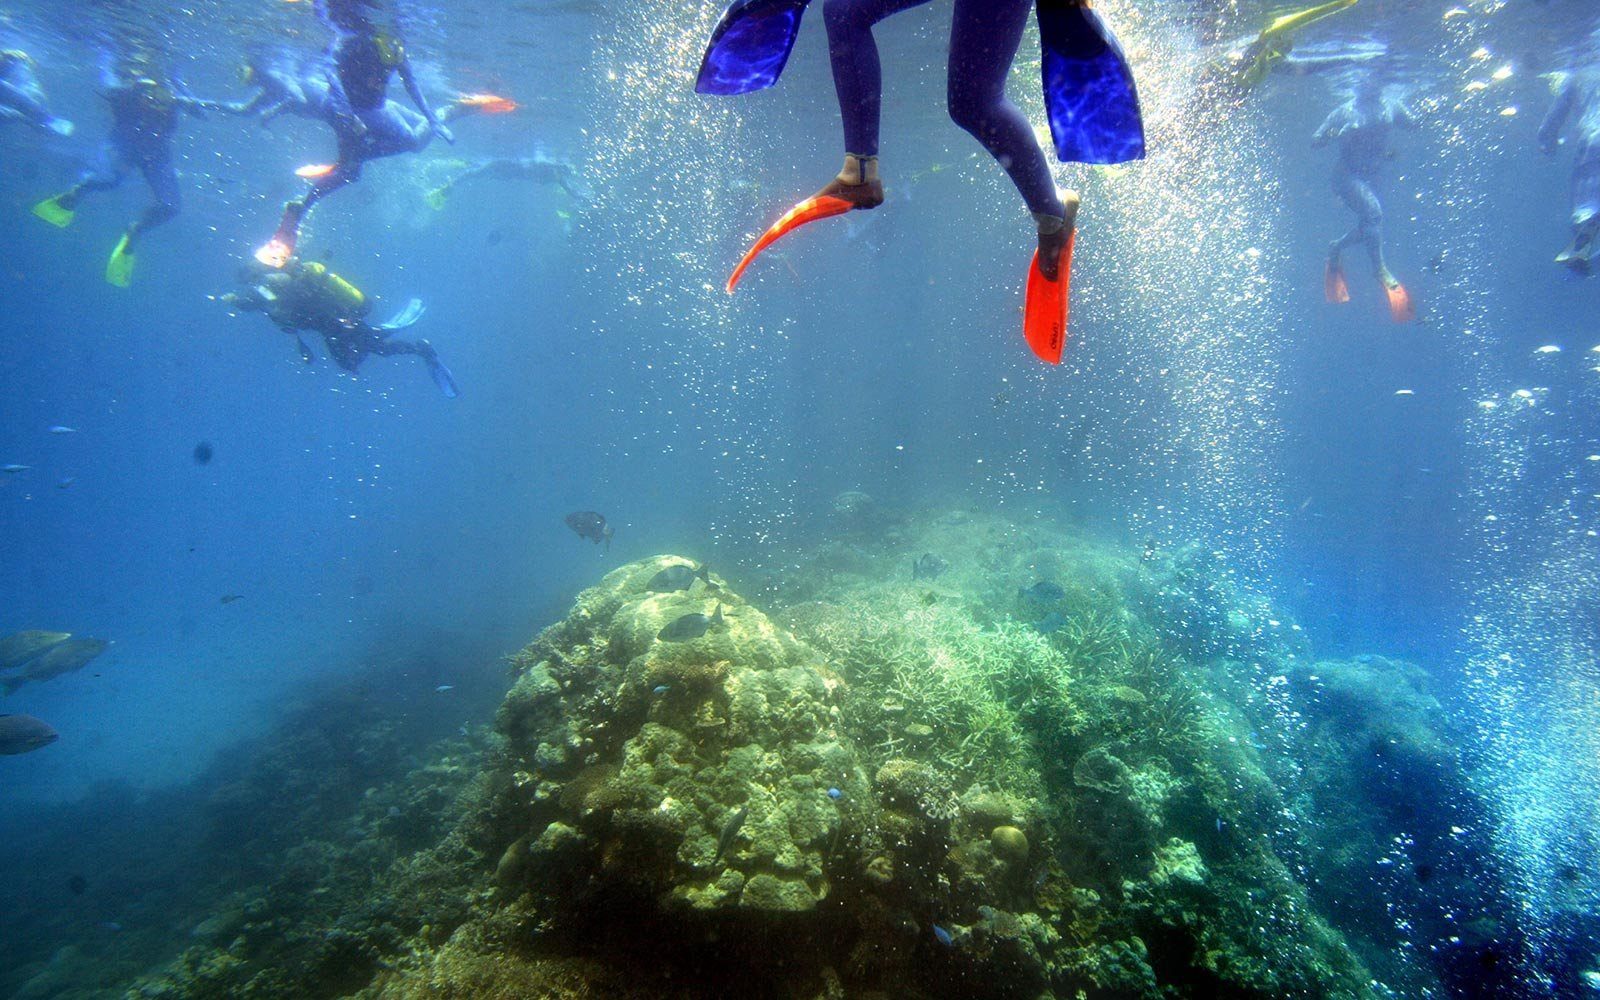 4. Dive Into the Great Barrier Reef in Australia